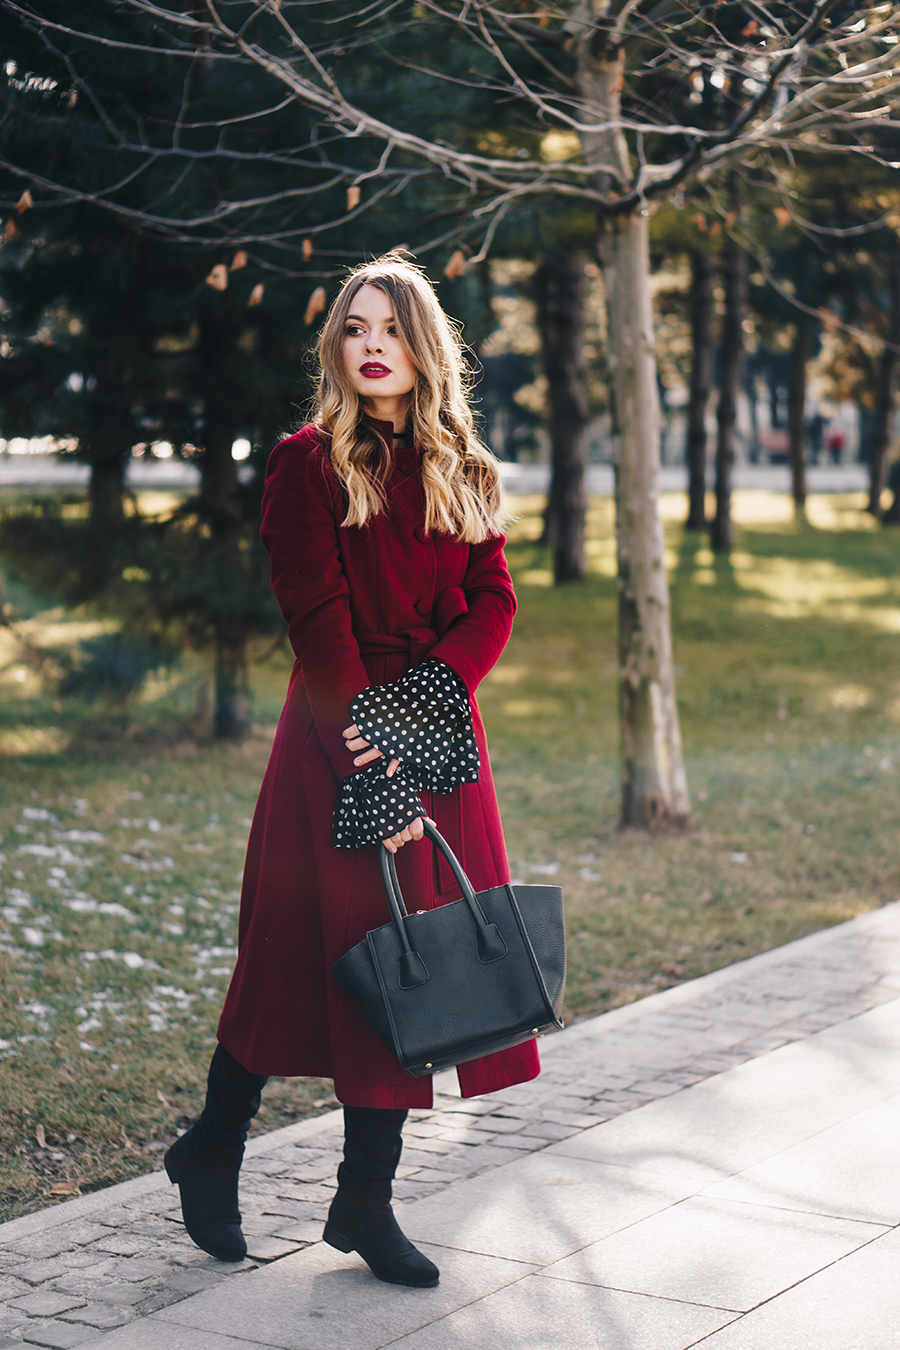 red-wool-coat-polka-dots-bell-sleeves-blouse-winter-outfit-5